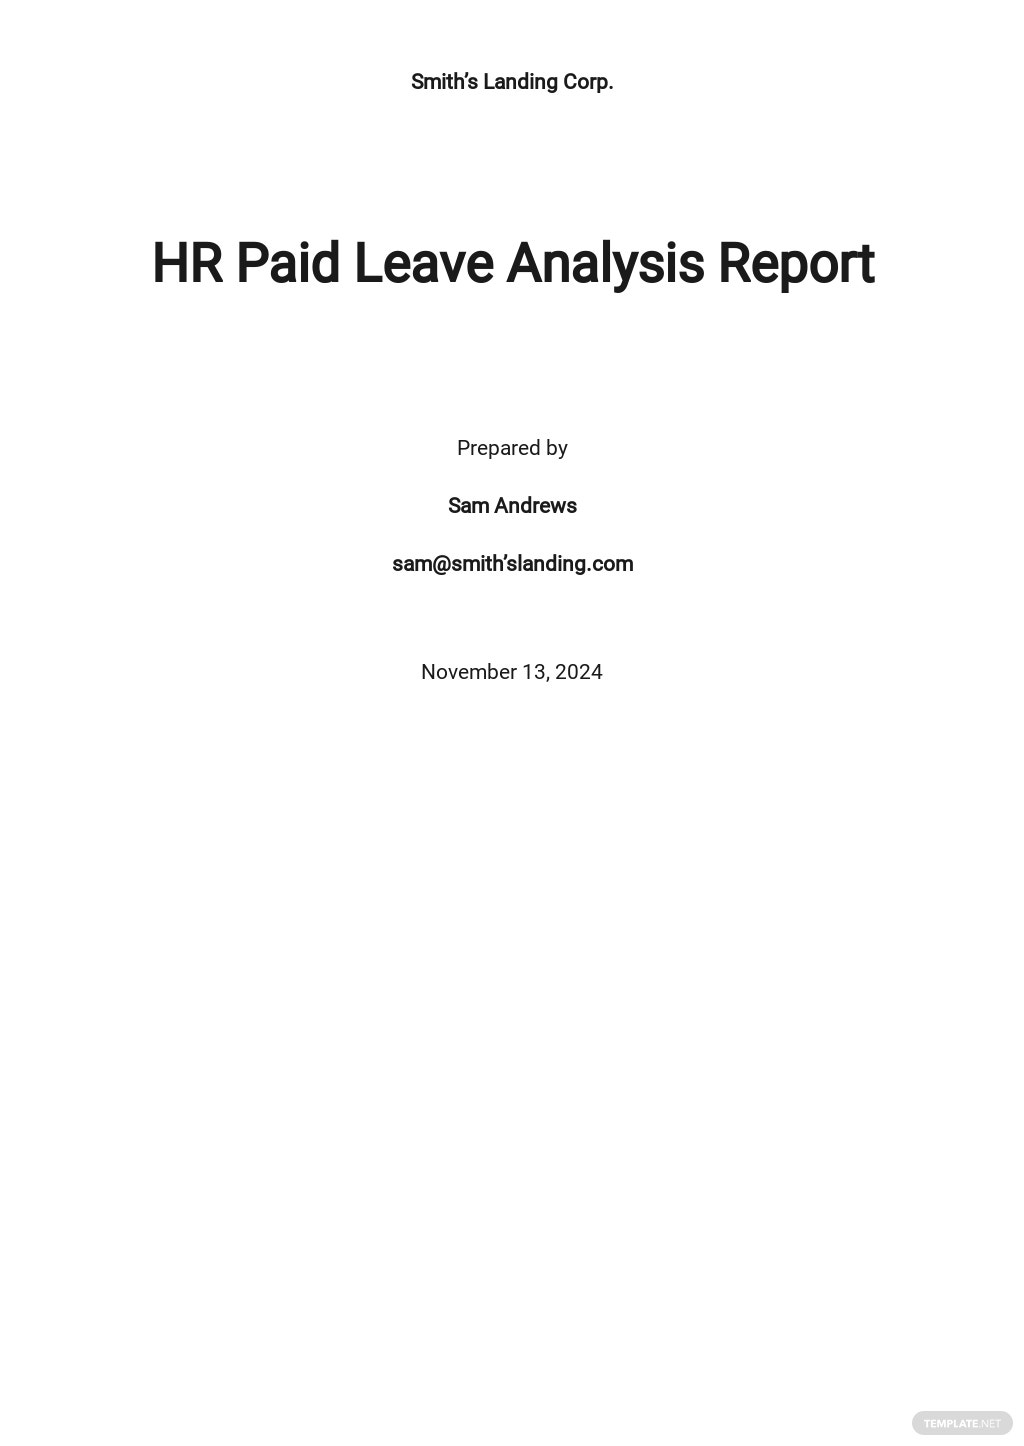 Paid Leave Analysis Report Template